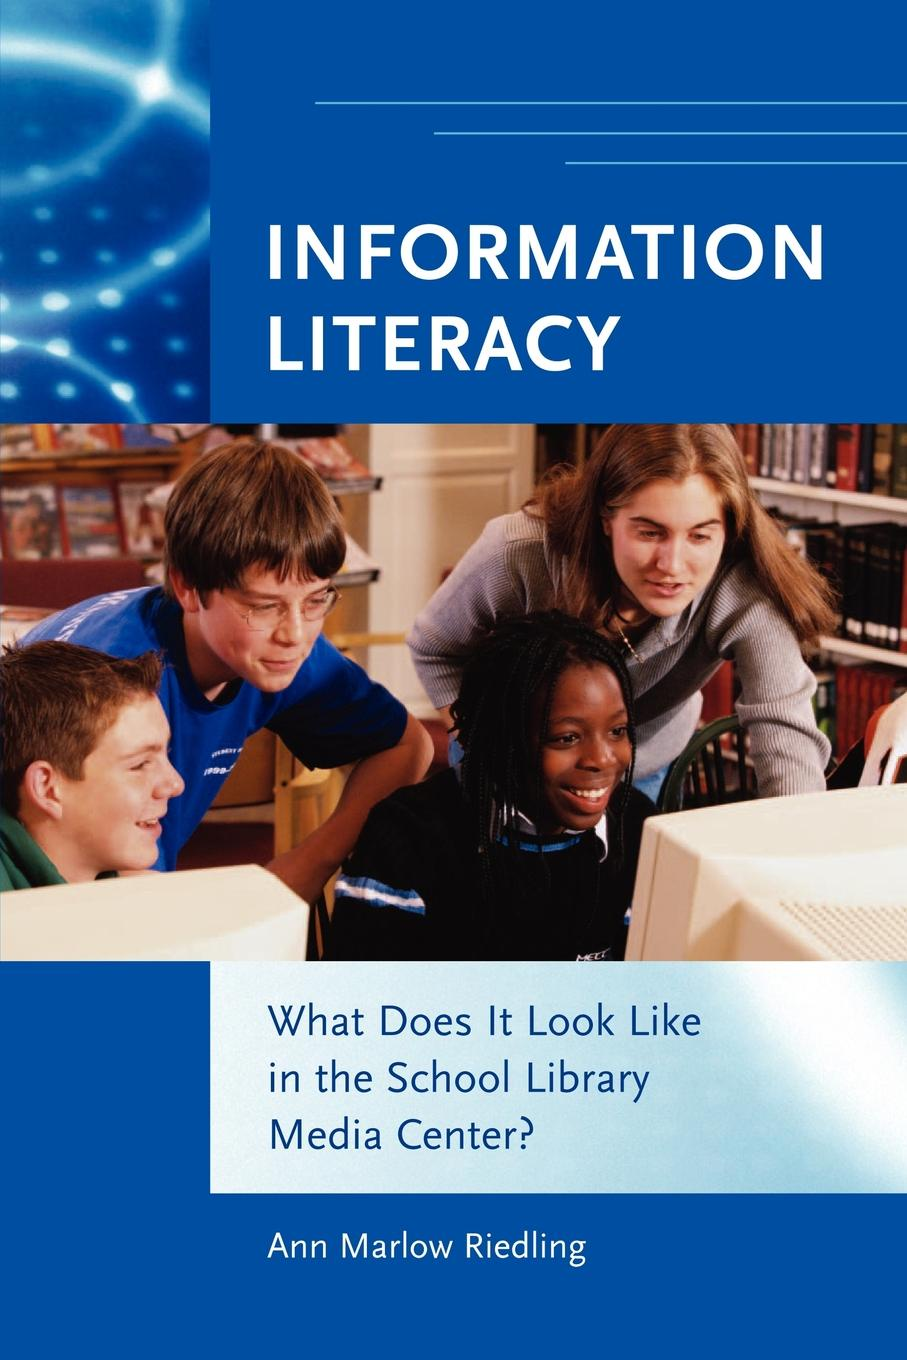 Ann Marlow Riedling Information Literacy. What Does It Look Like in the School Library Media Center?